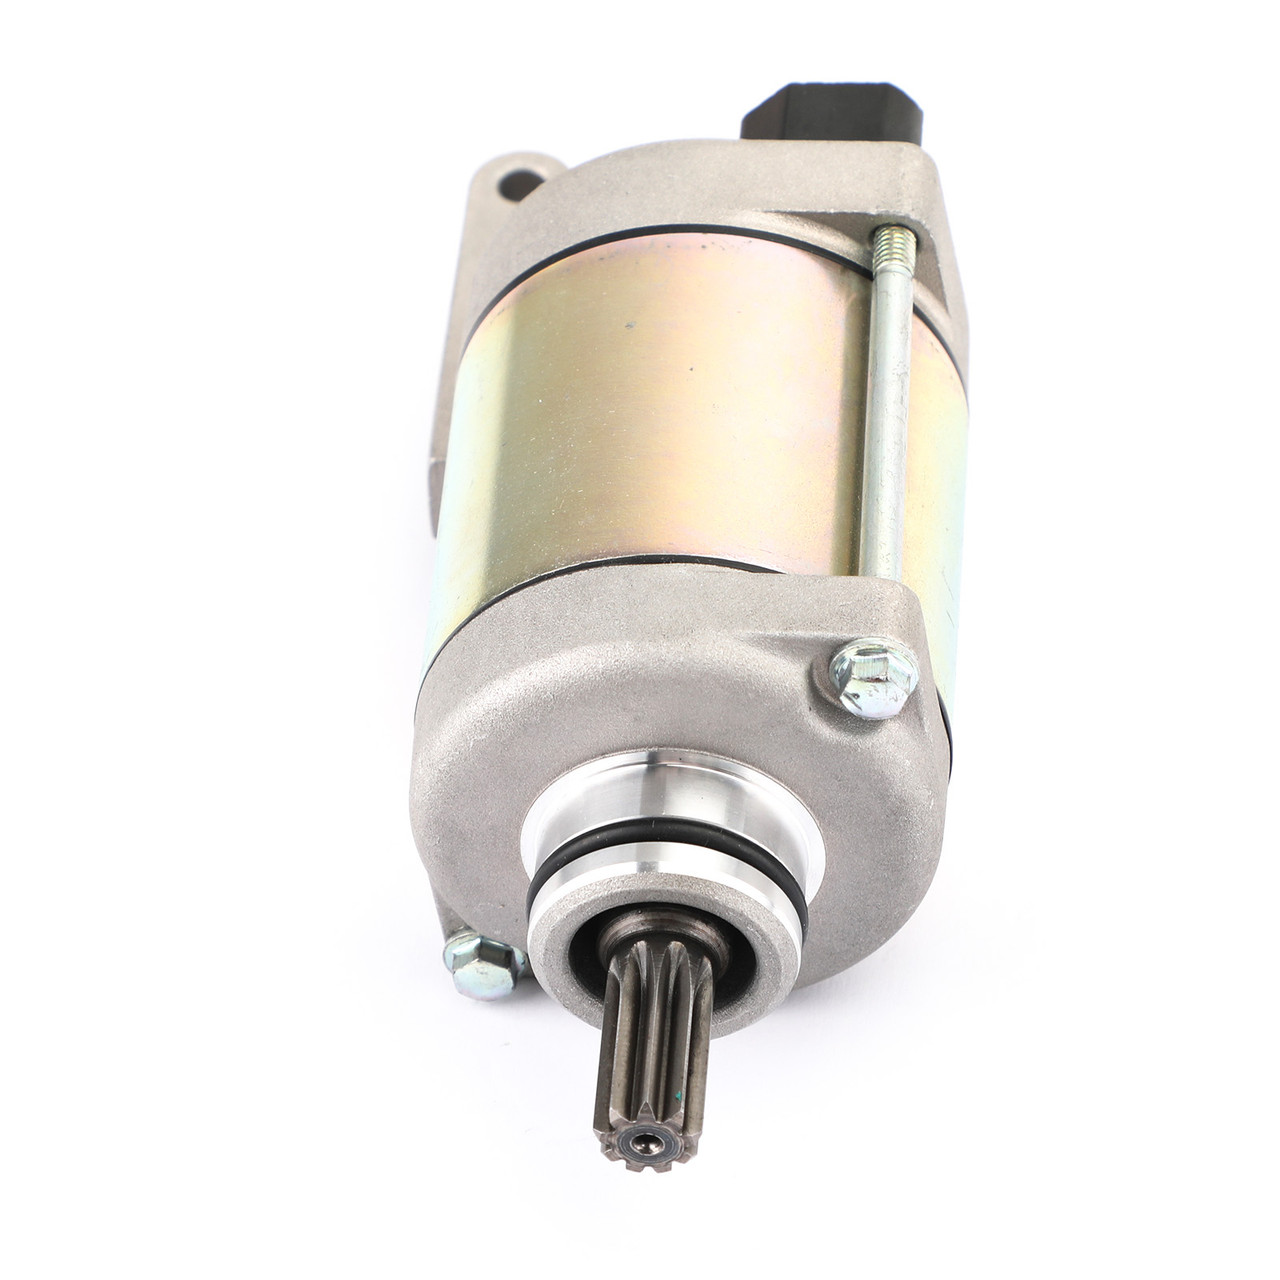 STARTER Motor Engine Starting 9-Spline Fit For Yamaha YS250 Fazer 250 12 Blueflex 13-15 XTZ250 Lander 13-16 Tenere 13-17